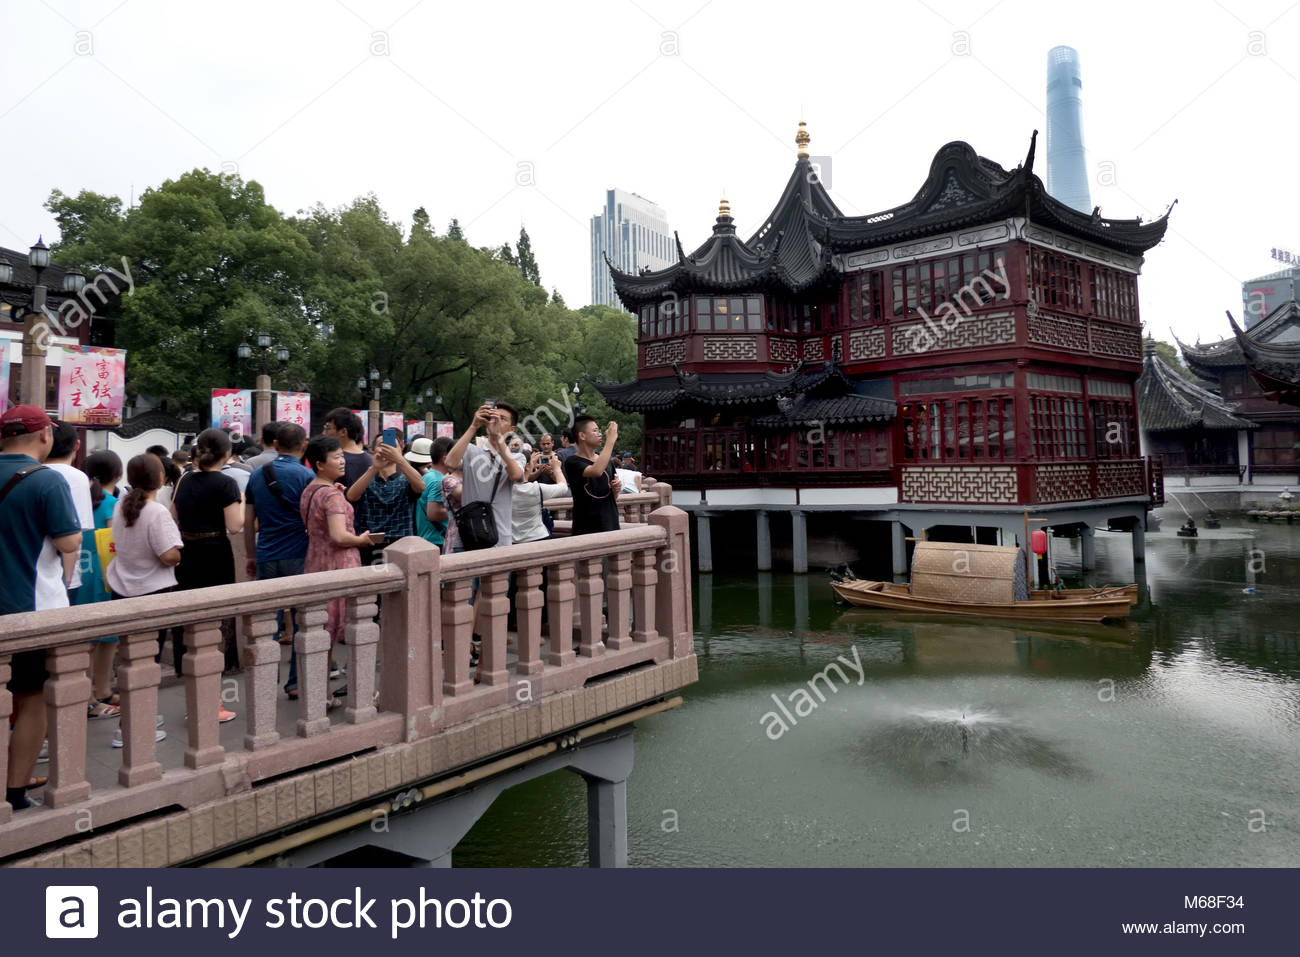 Yuyuan Garden Tea House, Famous Tourist Attraction And Traditional Old  Chinese Building In Shanghai, China, Asia Located Near Yu Garden.